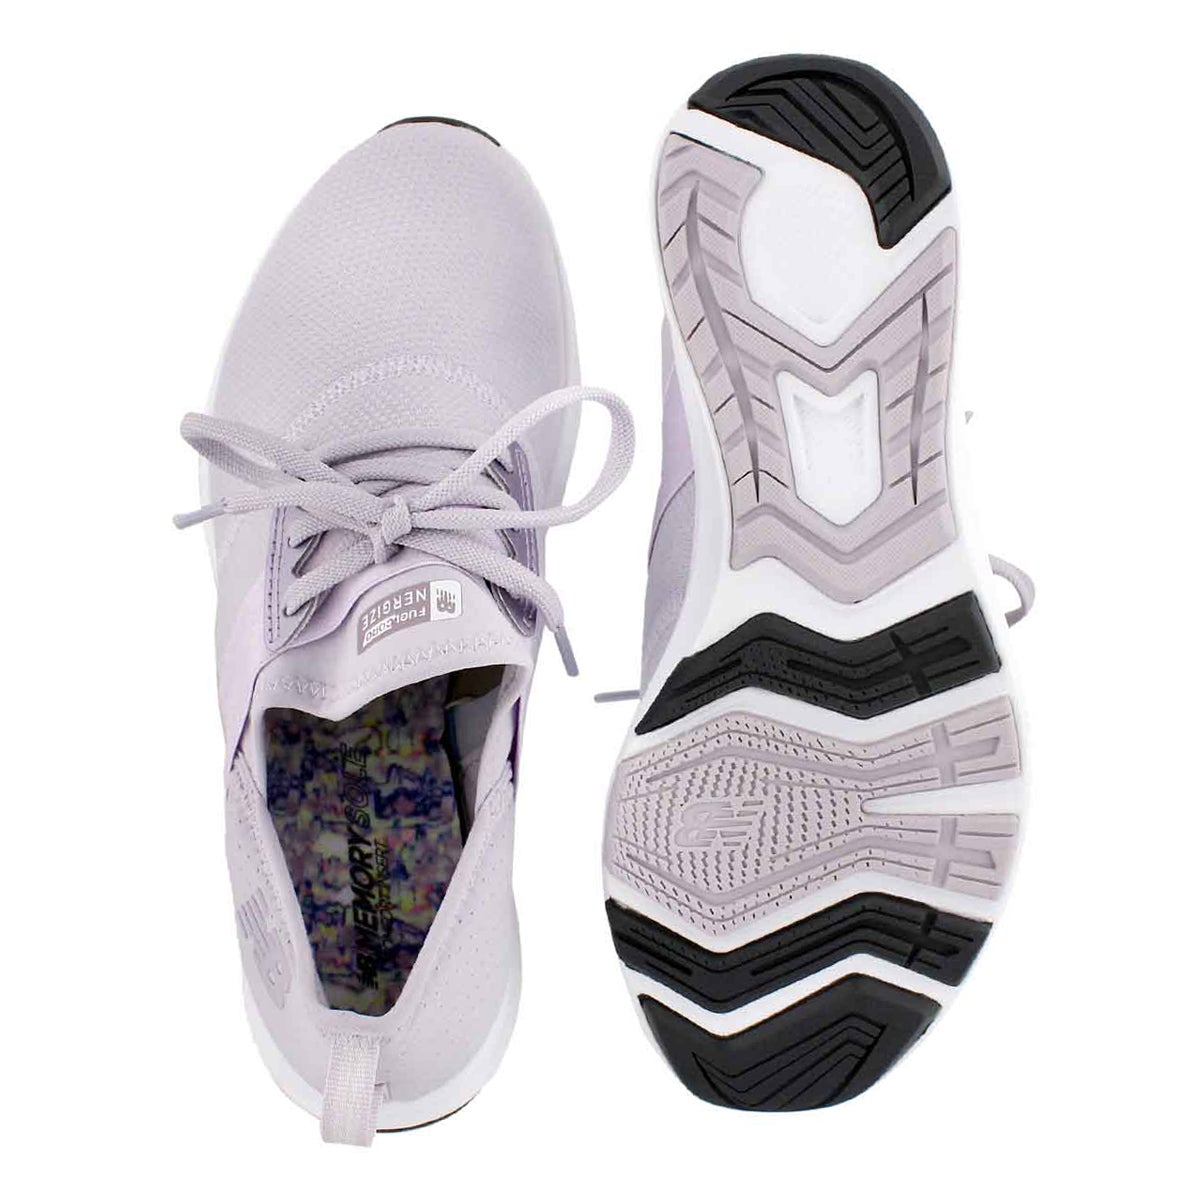 Lds Fuelcore thistle/wht lace up sneaker